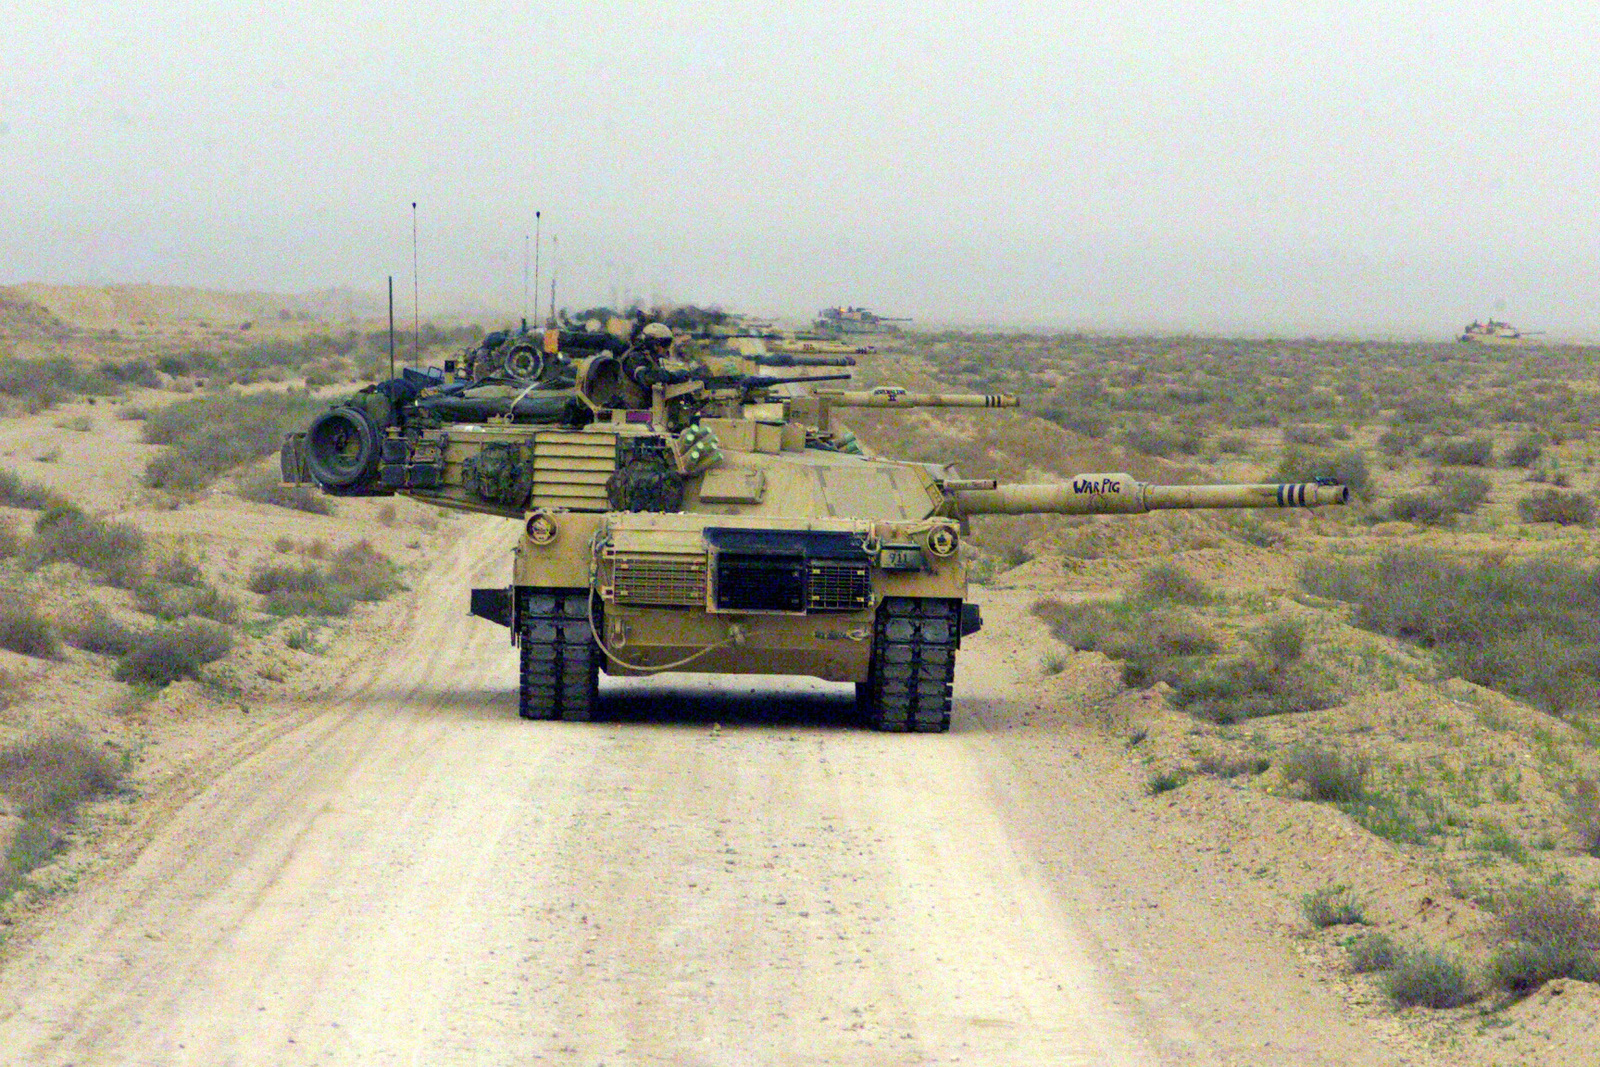 US Marine Corps (USMC) M1A1 Abrams Main Battle Tanks (MBT) with Charlie Company 1ST Tank Battalion, Twentynine Palms, California, line up and prepare to meet the enemy near Safwan Hill, Iraq during the opening shots of Operation IRAQI FREEDOM. IRAQI FREEDOM is the multinational coalition effort to liberate the Iraqi people, eliminate Iraq's weapons of mass destruction and end the regime of Saddam Hussein